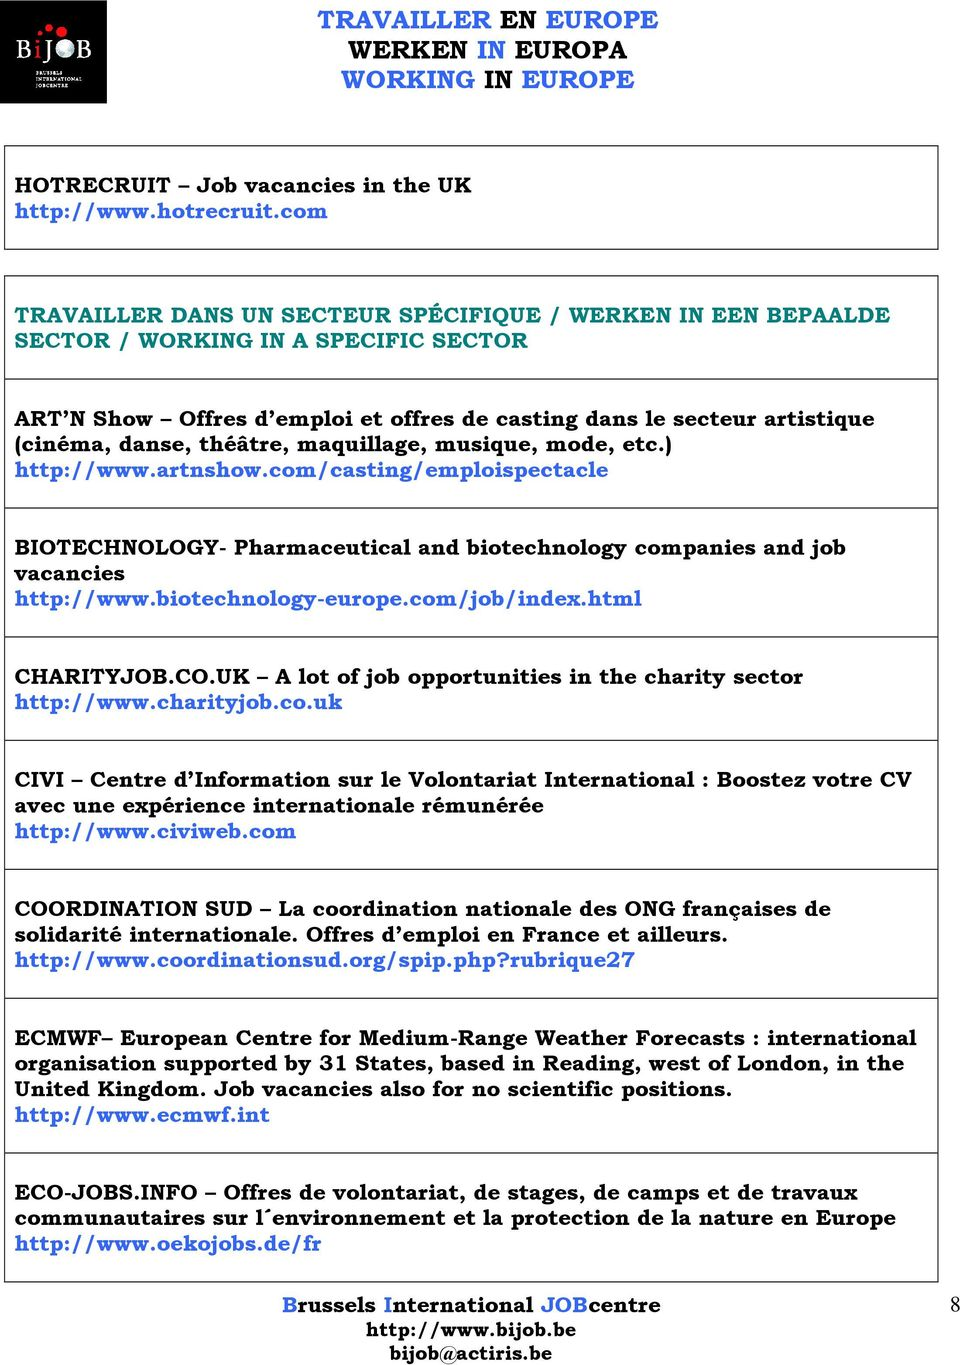 théâtre, maquillage, musique, mode, etc.) http://www.artnshow.com/casting/emploispectacle BIOTECHNOLOGY- Pharmaceutical and biotechnology companies and job vacancies http://www.biotechnology-europe.